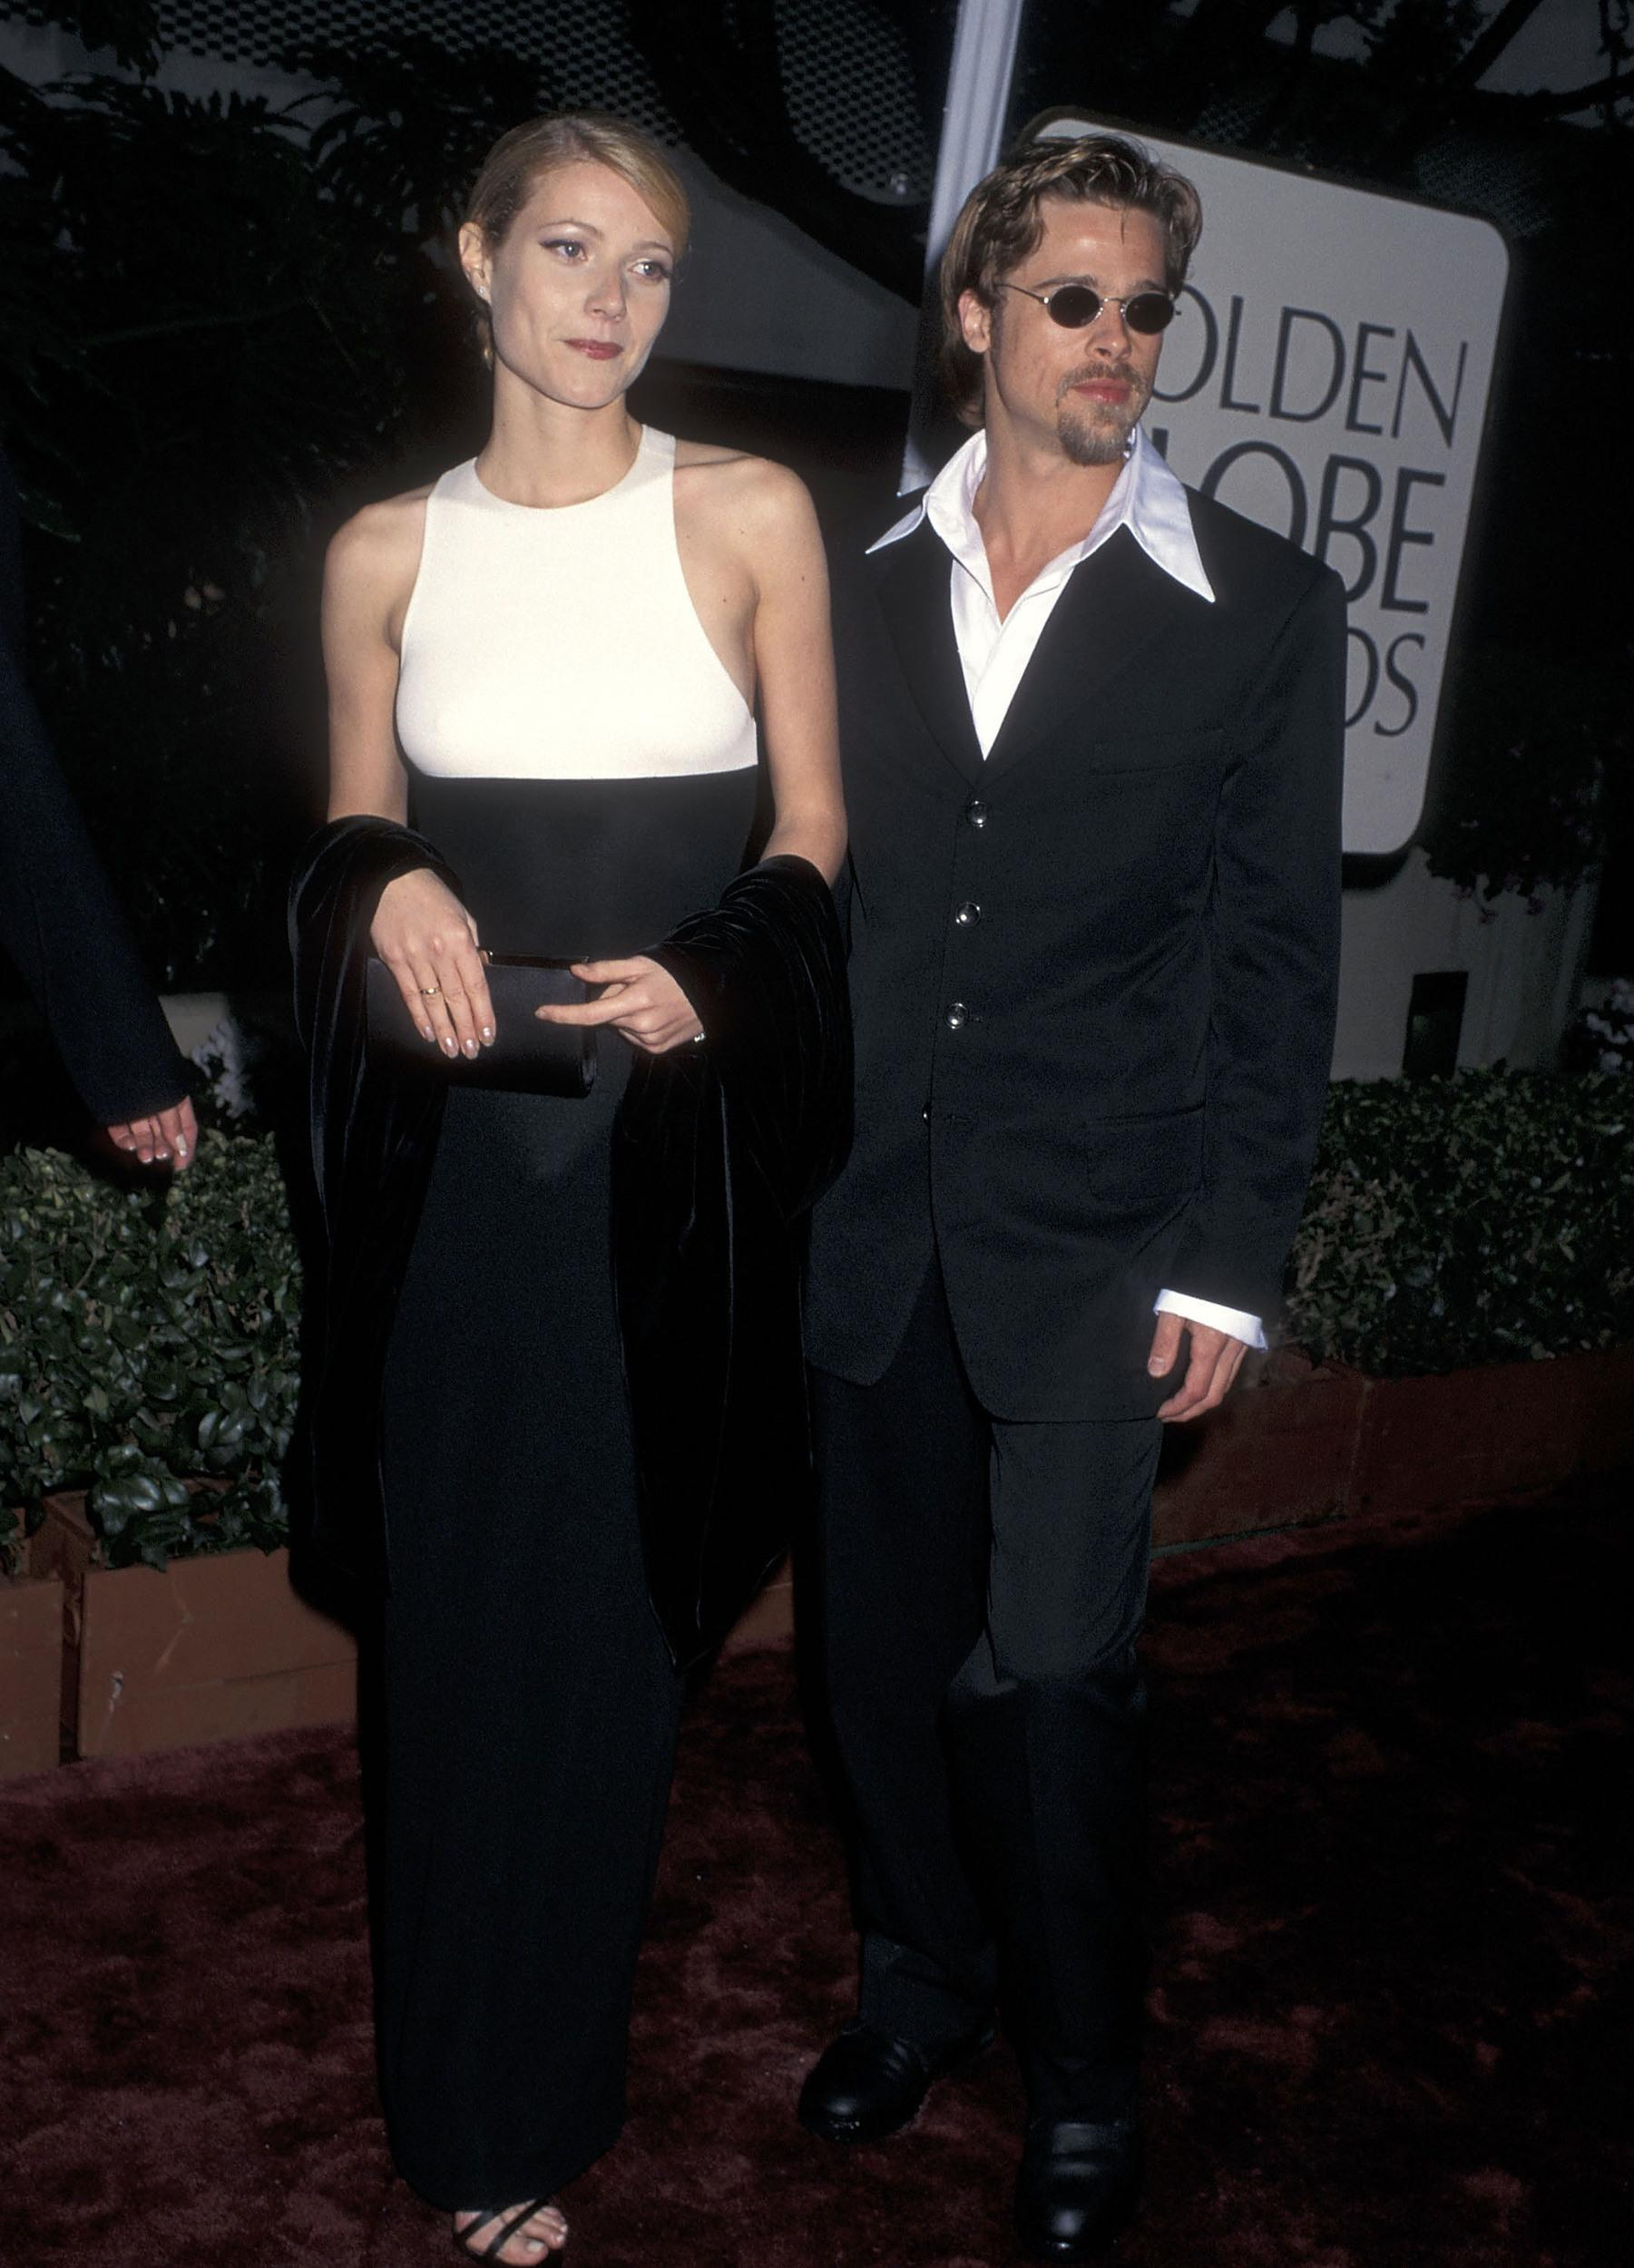 Actress Gwyneth Paltrow and actor Brad Pitt attend the 53rd Annual Golden Globe Awards on January 21, 1996 at Beverly Hilton Hotel in Beverly Hills, California. (Photo by Ron Galella, Ltd./WireImage)